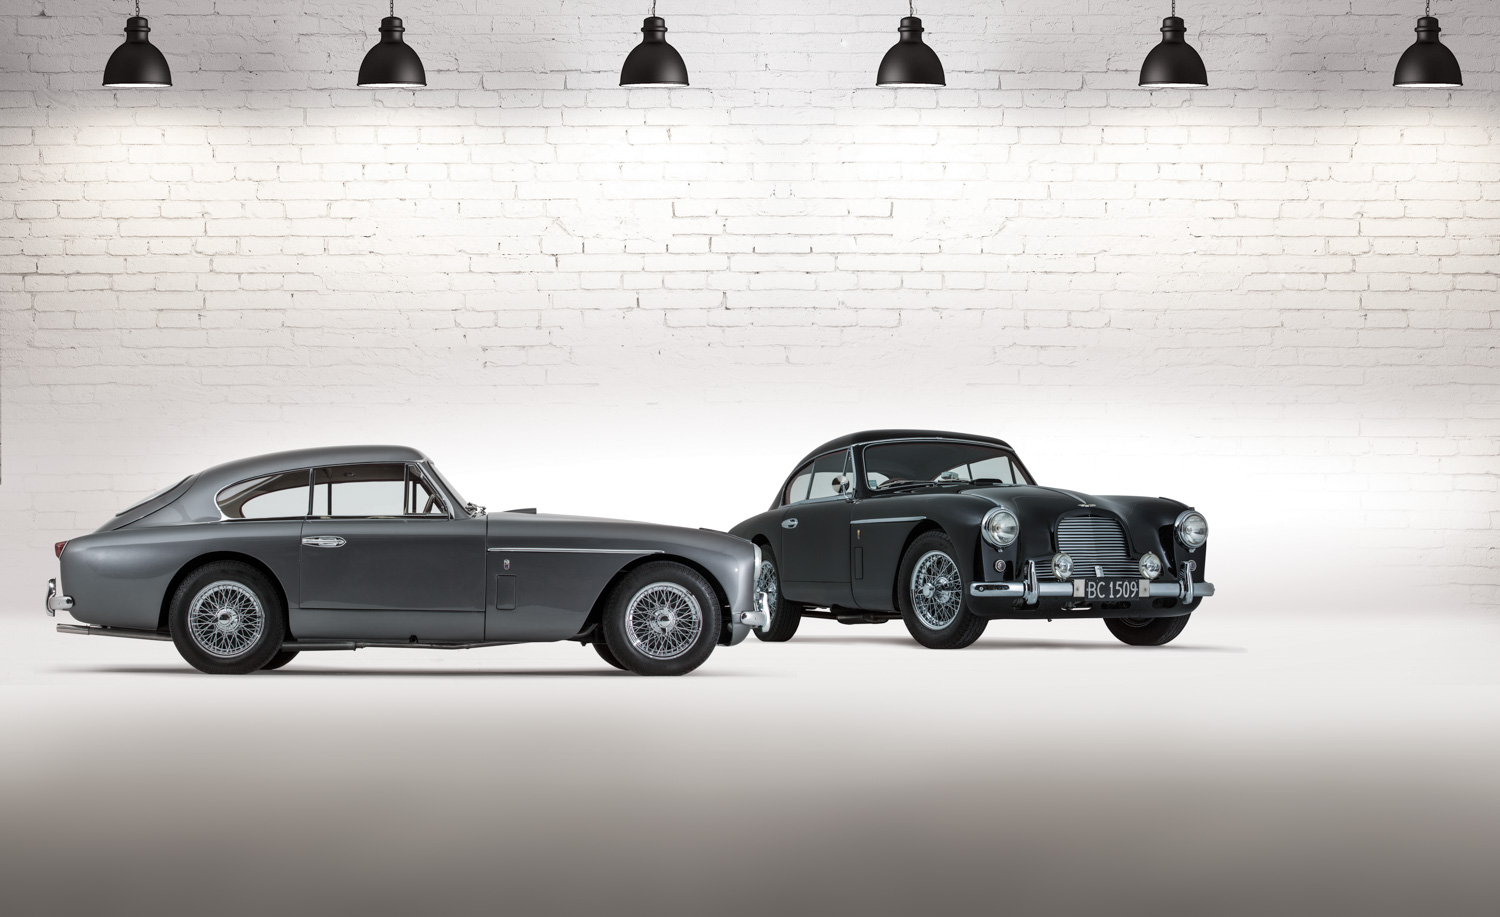 Dynamic Duo Aston Martin DB Mk II The Motorhood - Aston martin db2